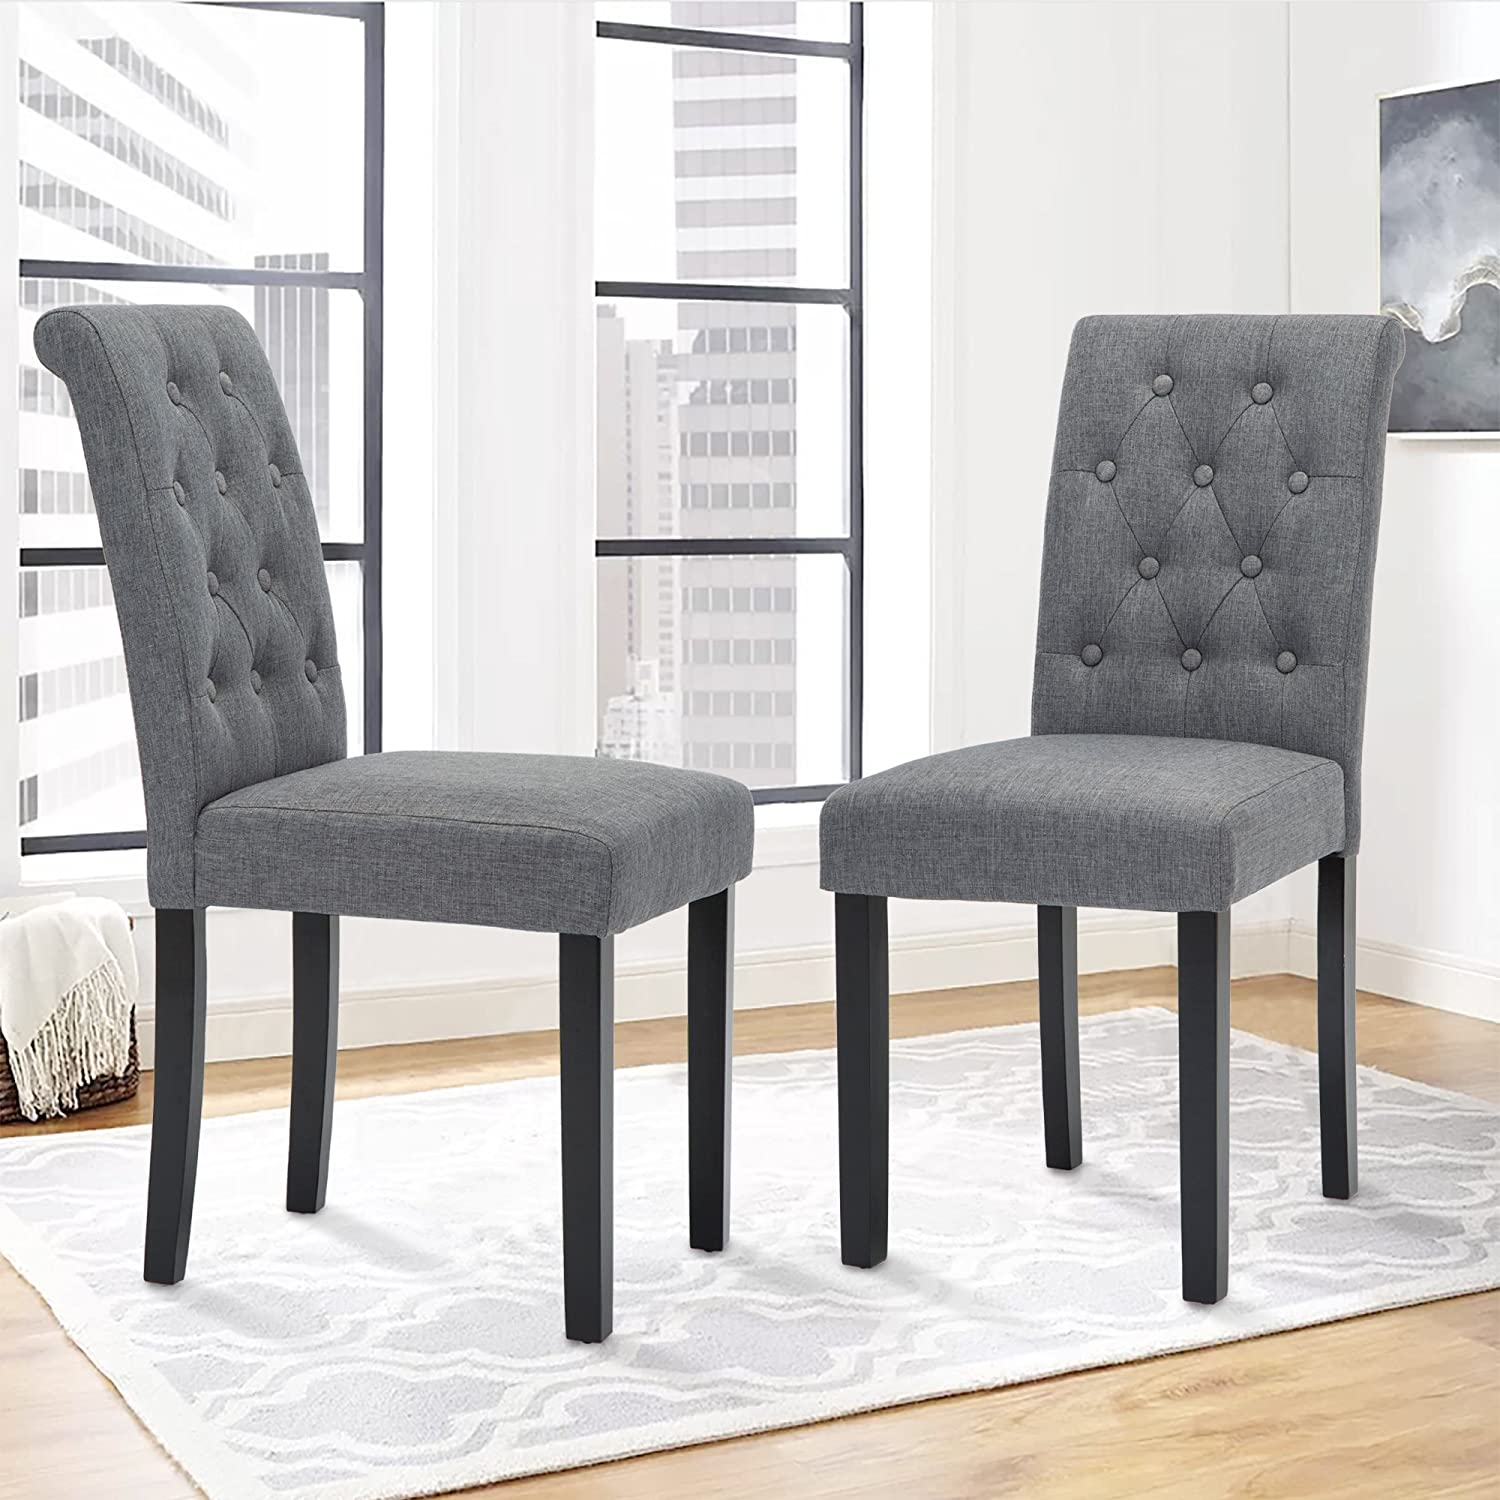 Set of 2 Upholstered Fabric Dining Chairs with Button-tufted Details (Black) Thksbought